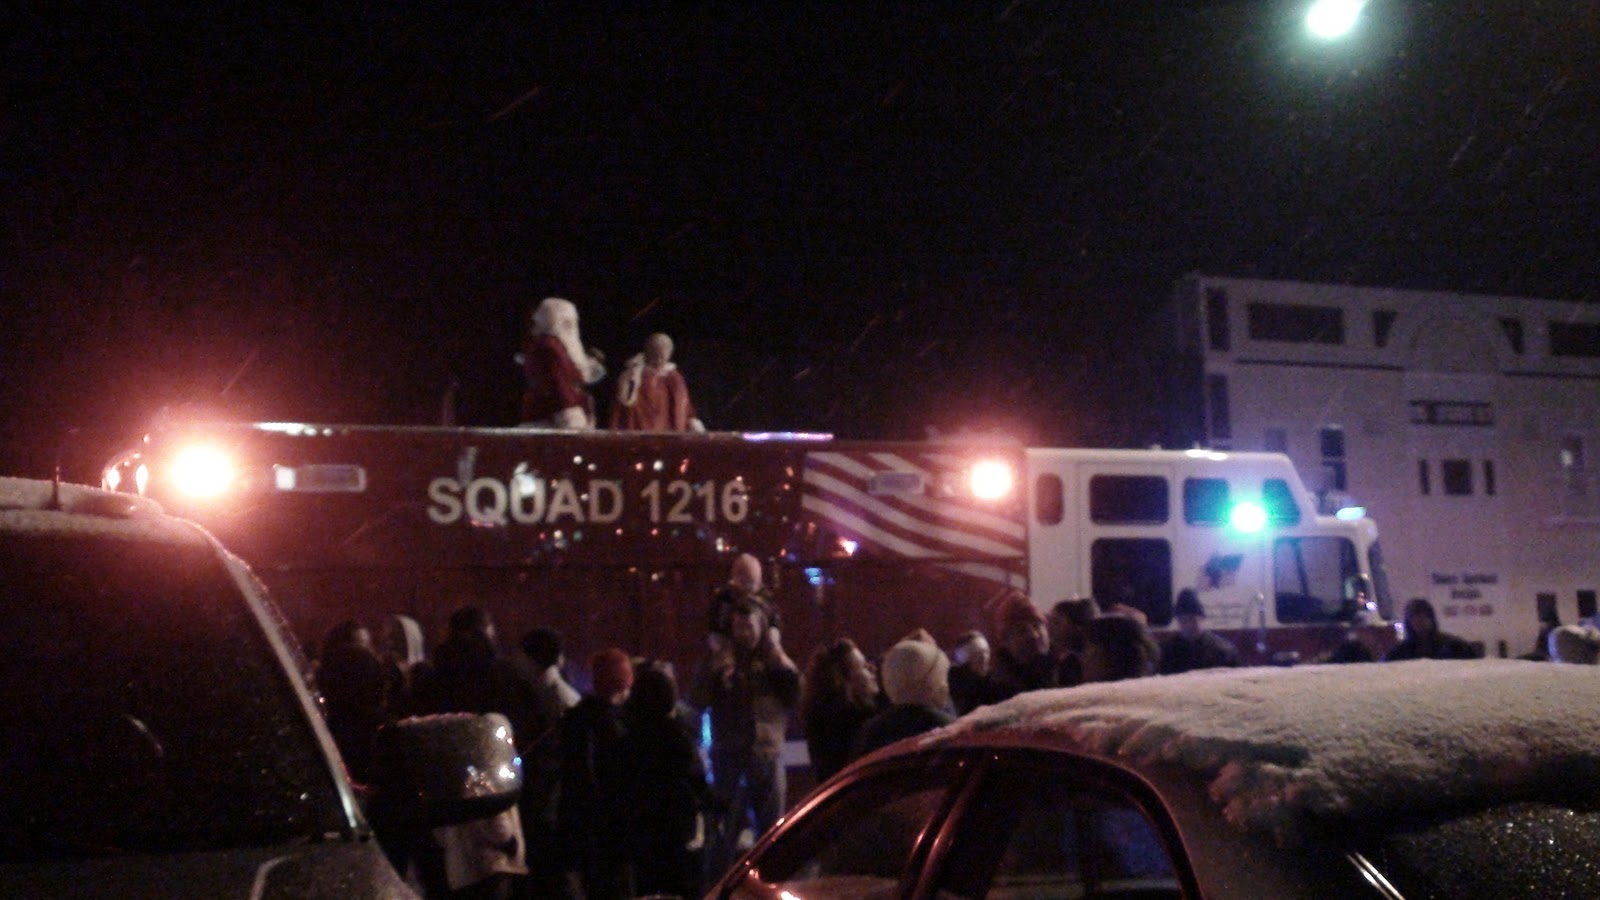 Illinois will county manhattan - Christmas Tree Lighting In Downtonwn Manhattan Illinois Santa And Mrs Clause Greeted Everyone From The Back Of The Firetruck